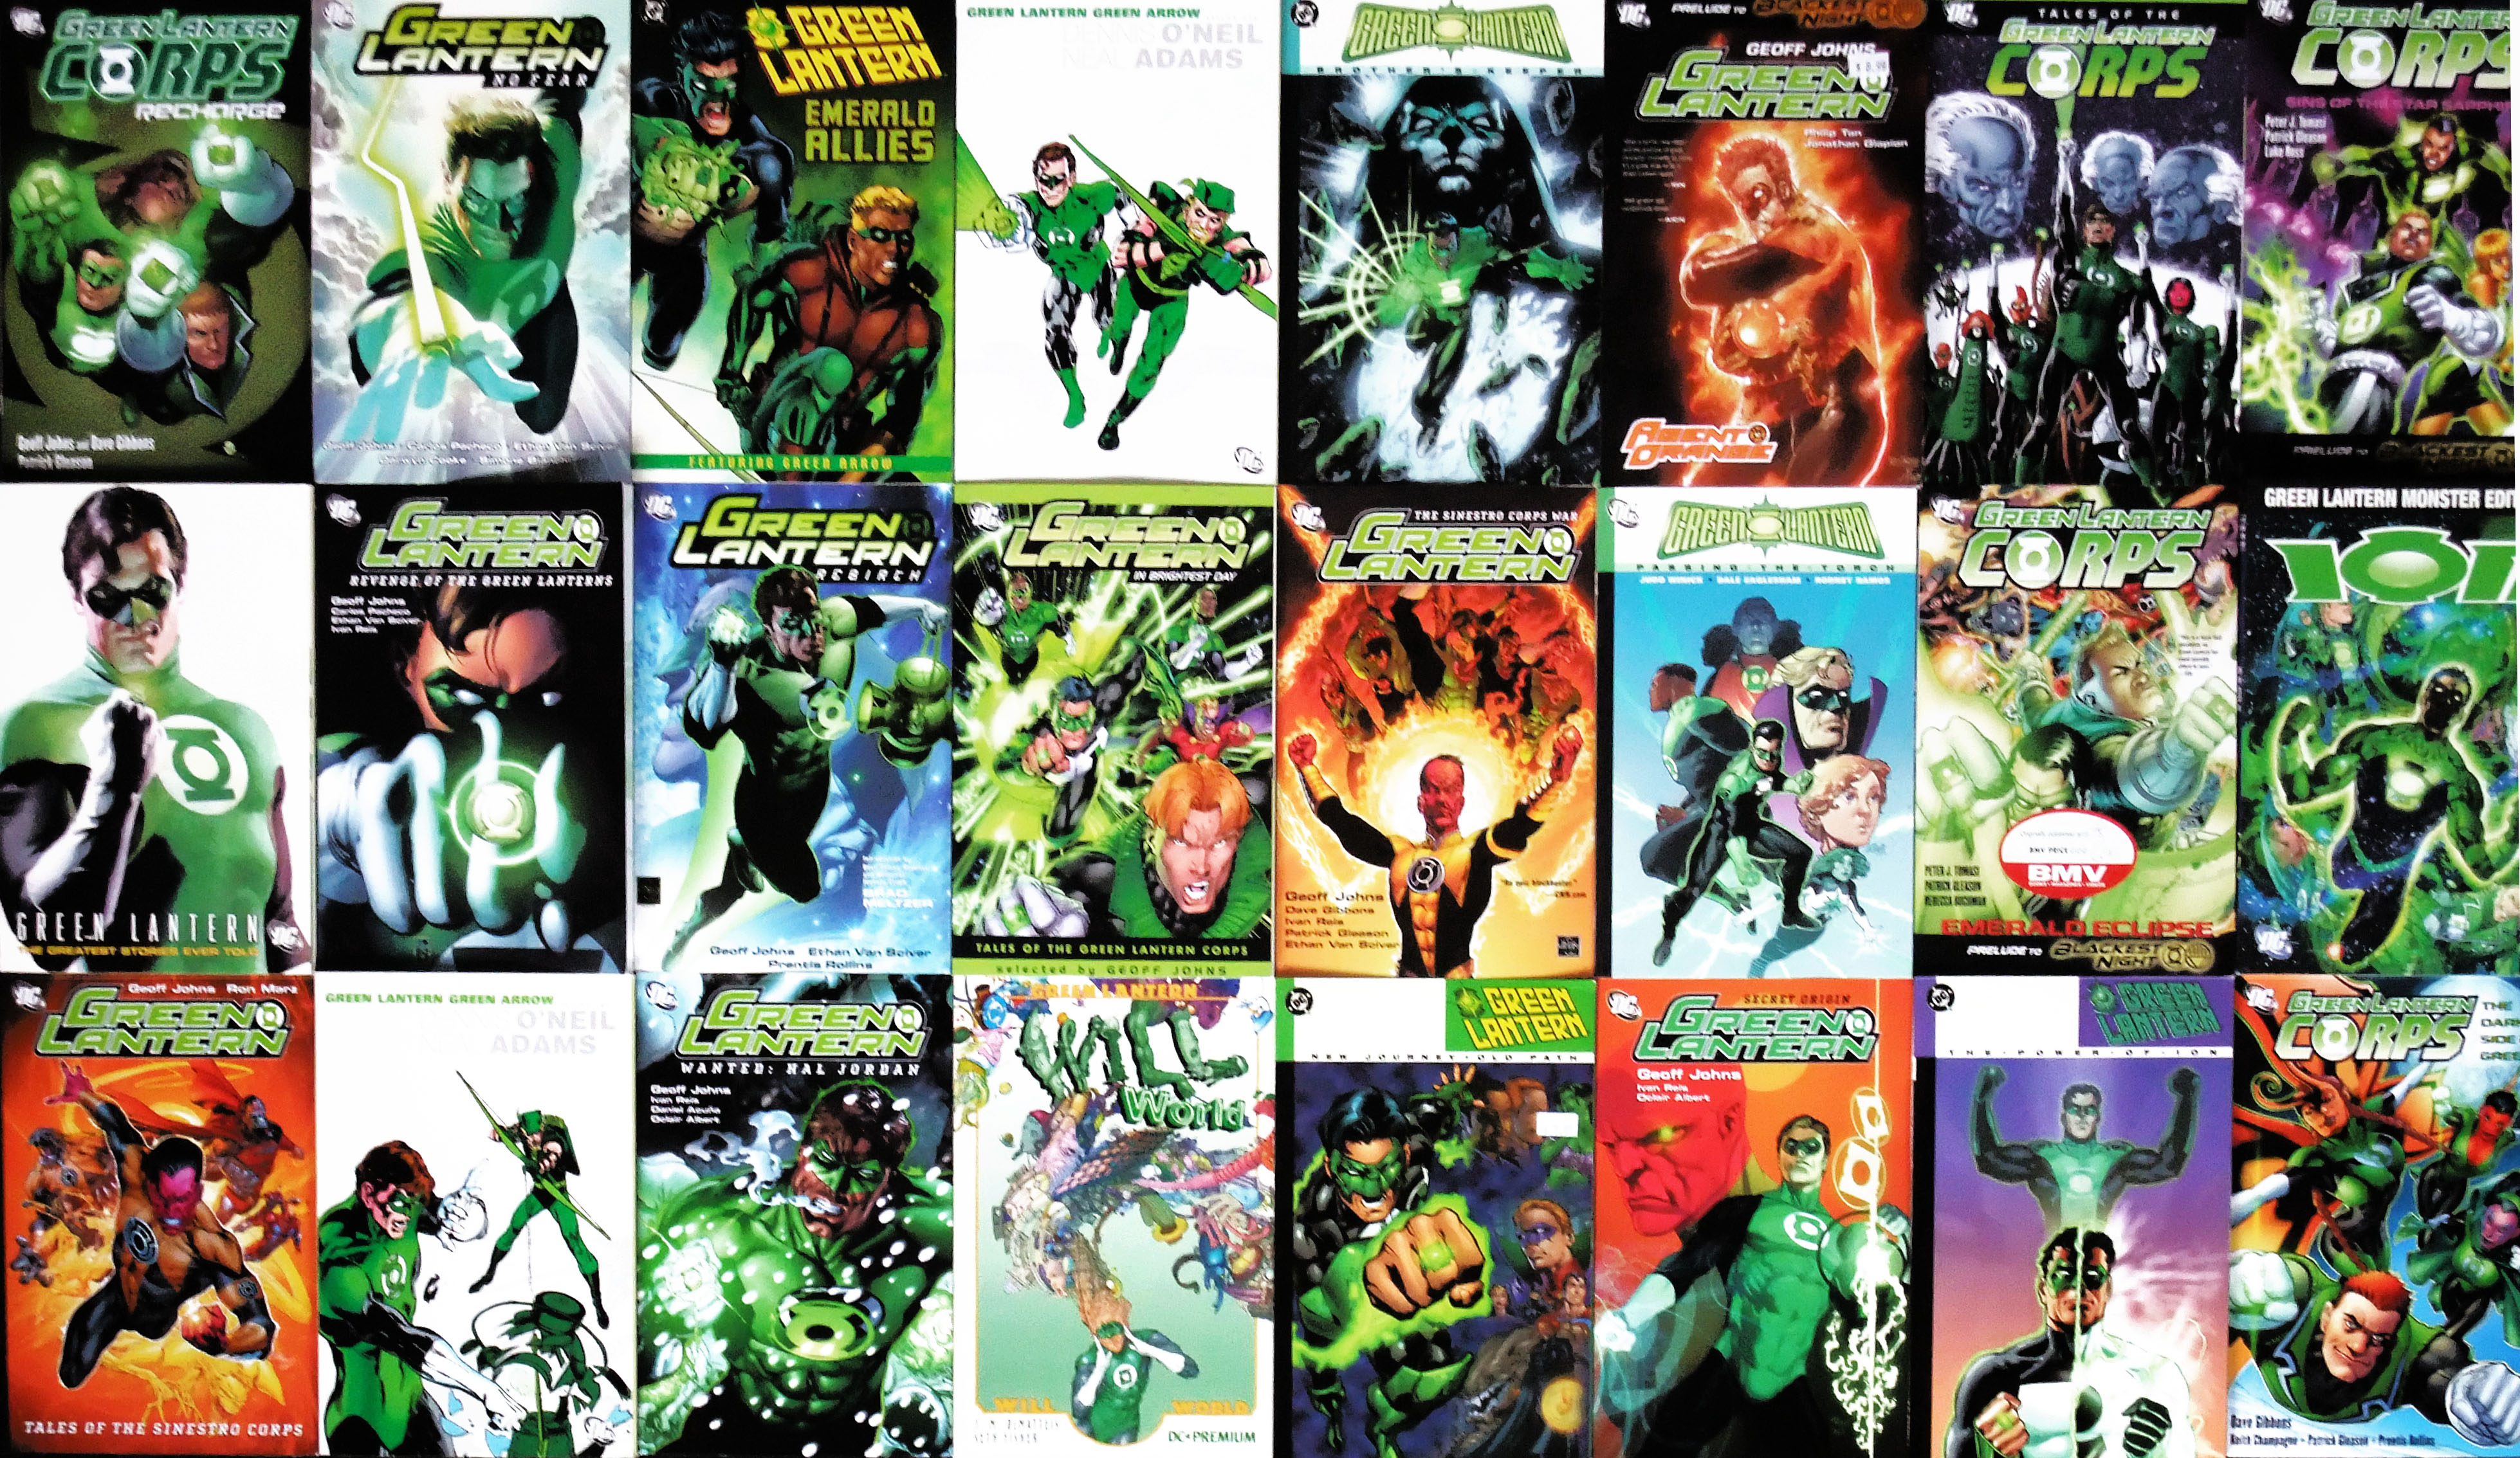 Green Lantern Mosaic Covers